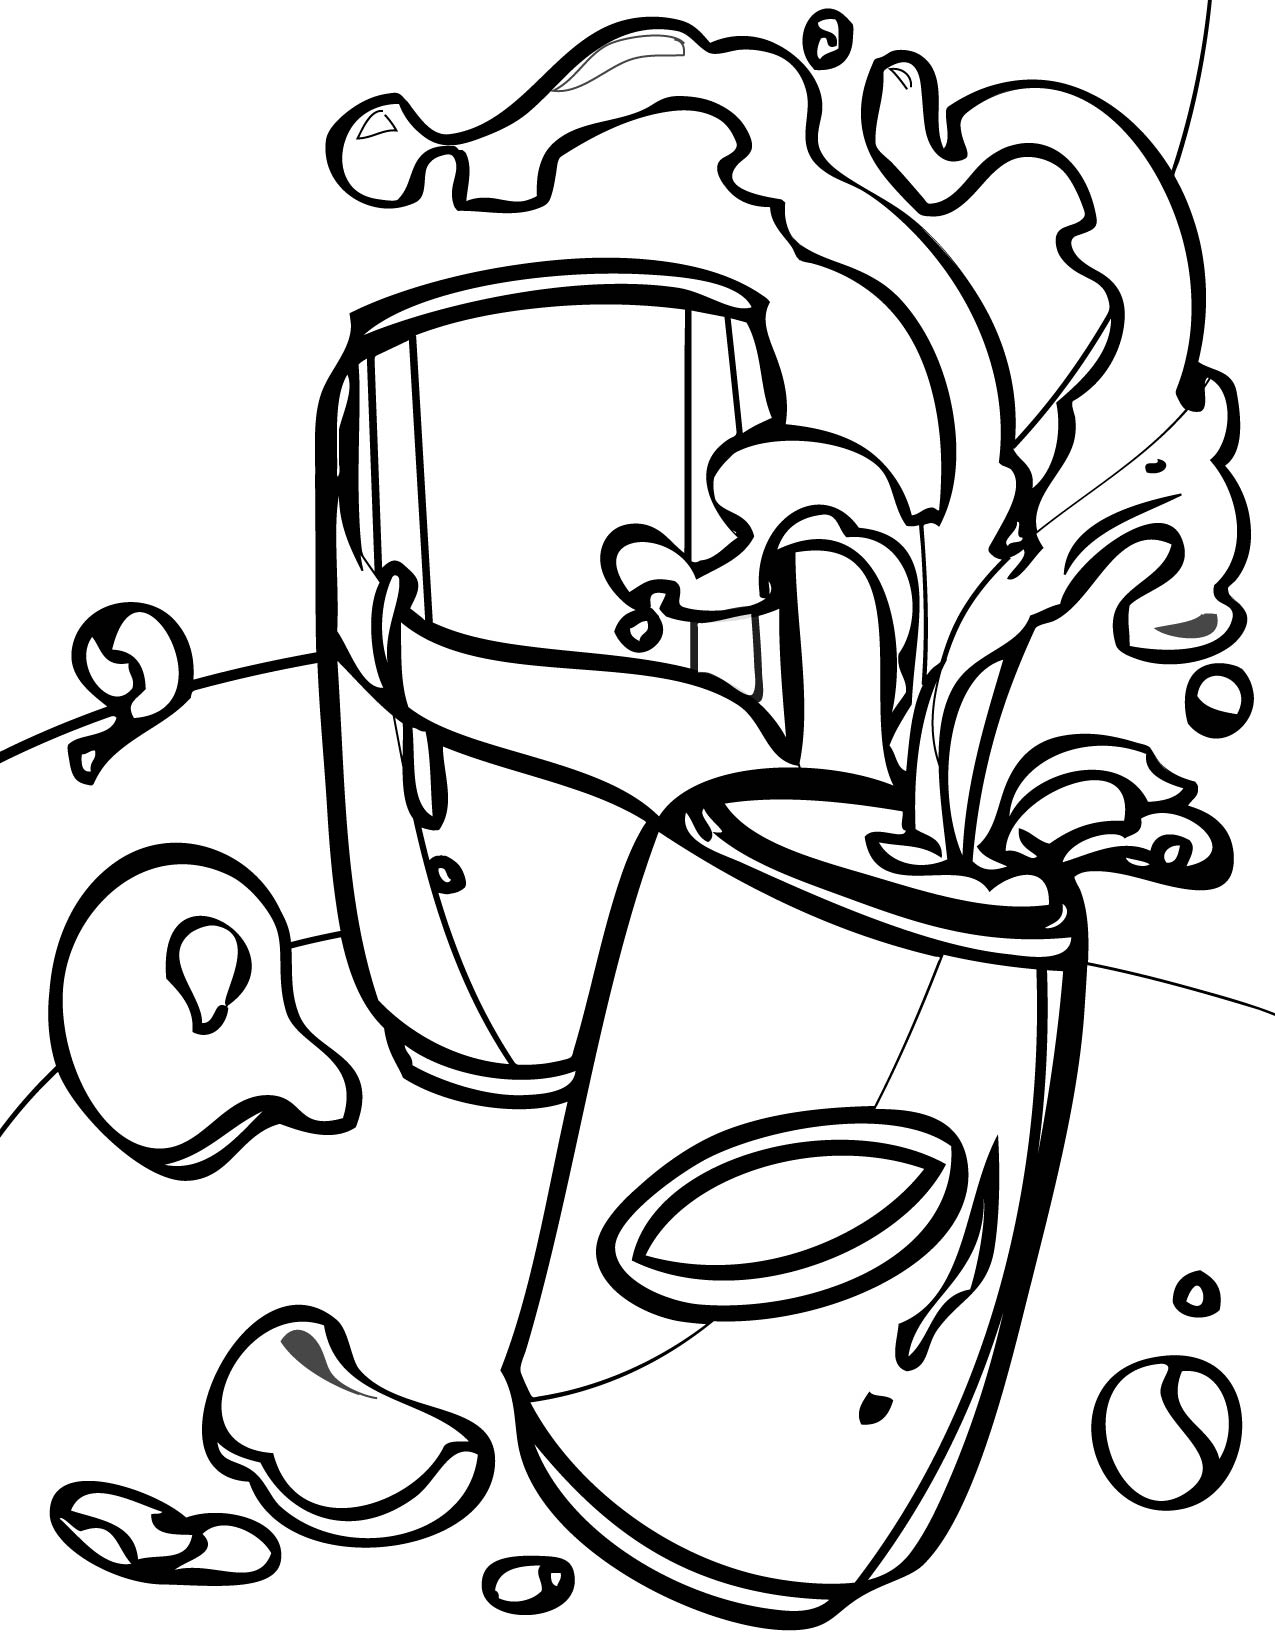 soda coloring pages - photo#8